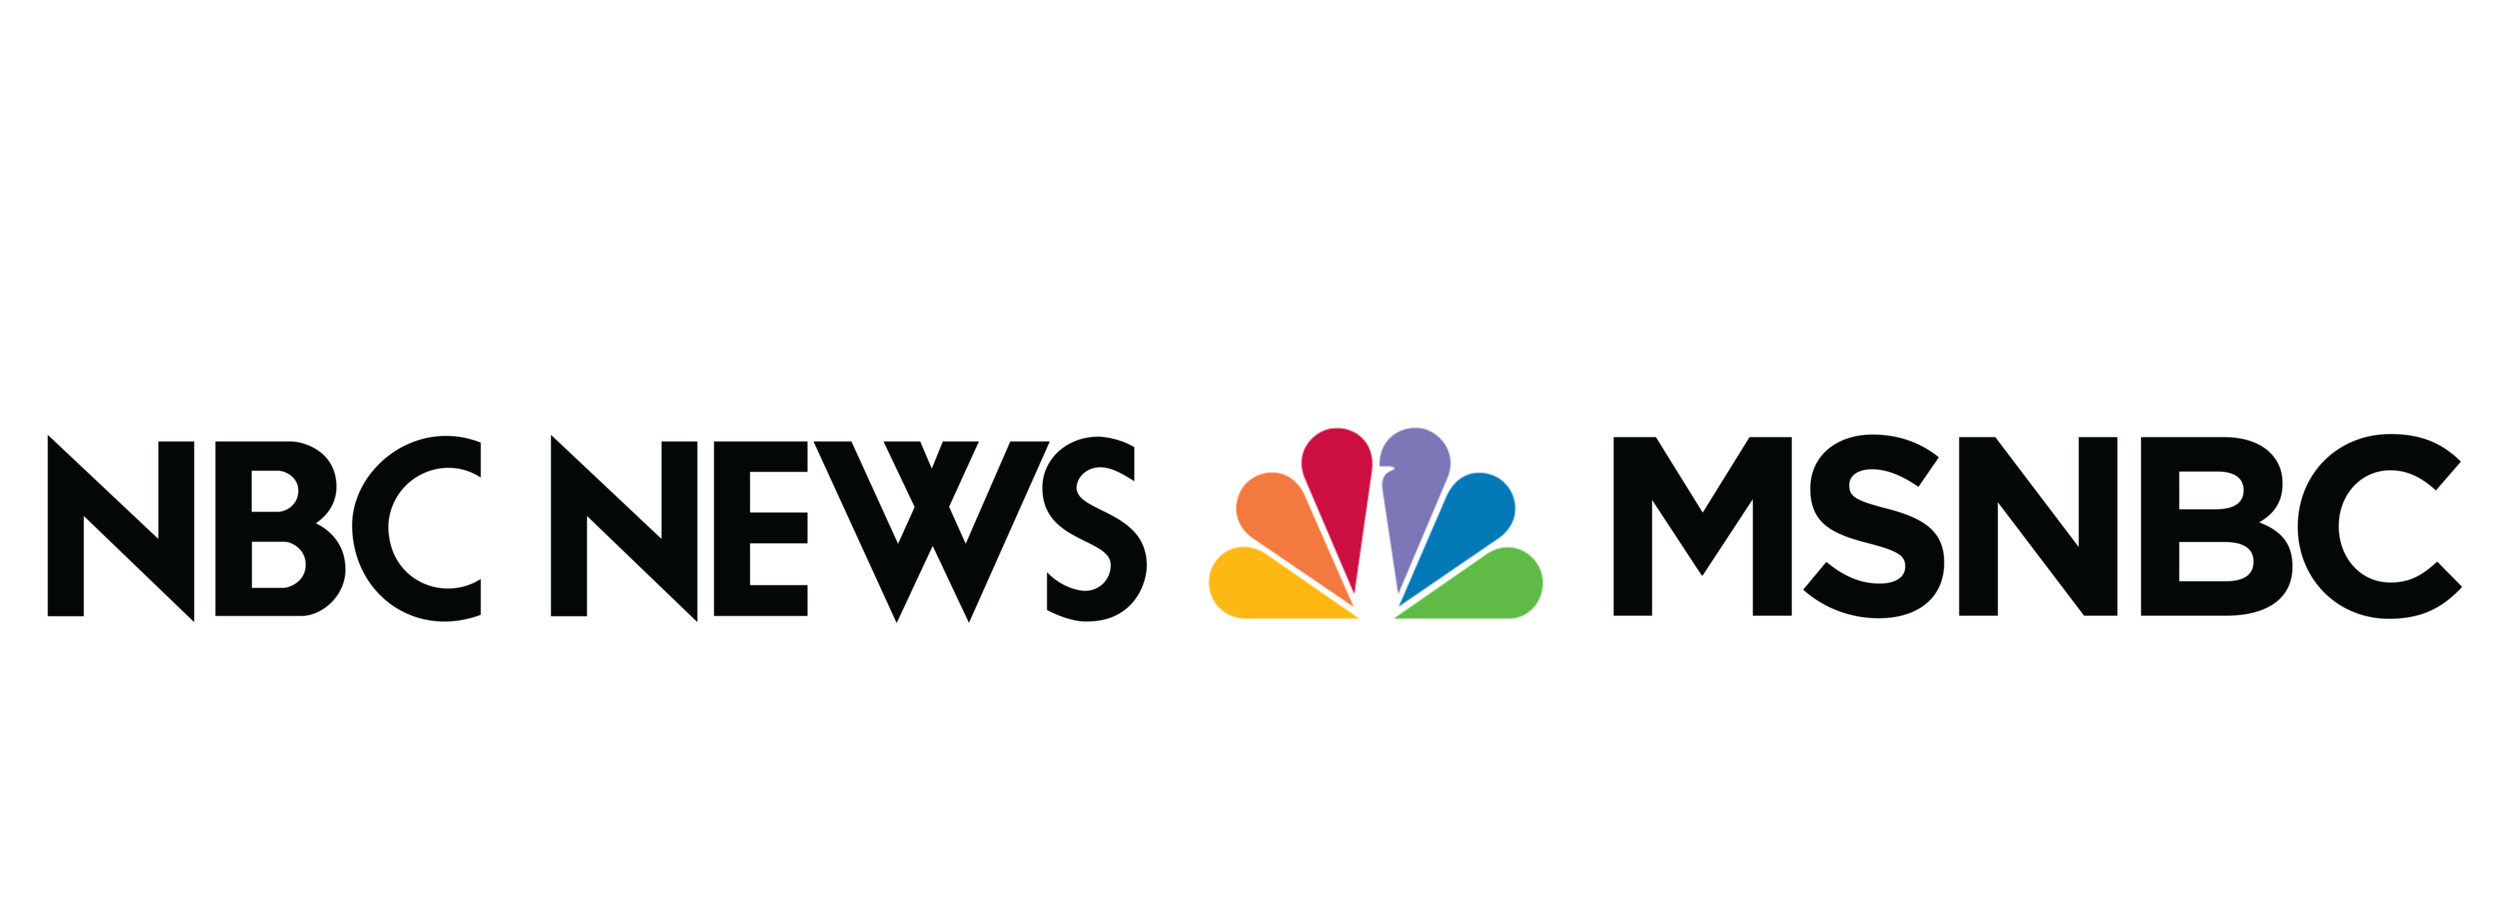 NBC NEWS MSNBC LOGO COMBO_REVISED[1].png